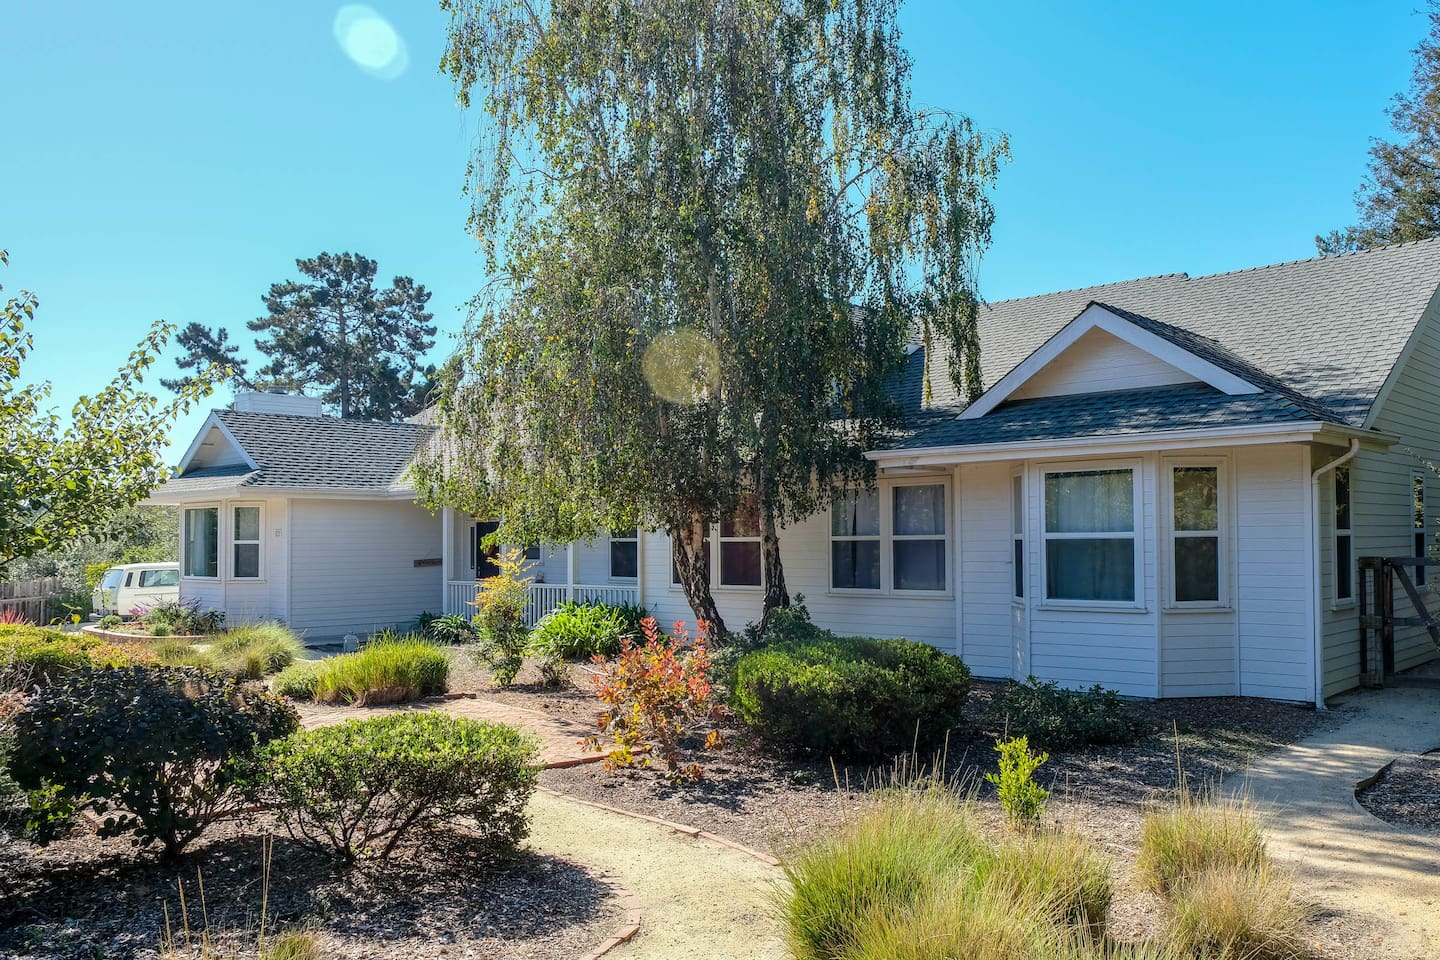 Welcome to our farm-style home just outside the Village of Arroyo Grande